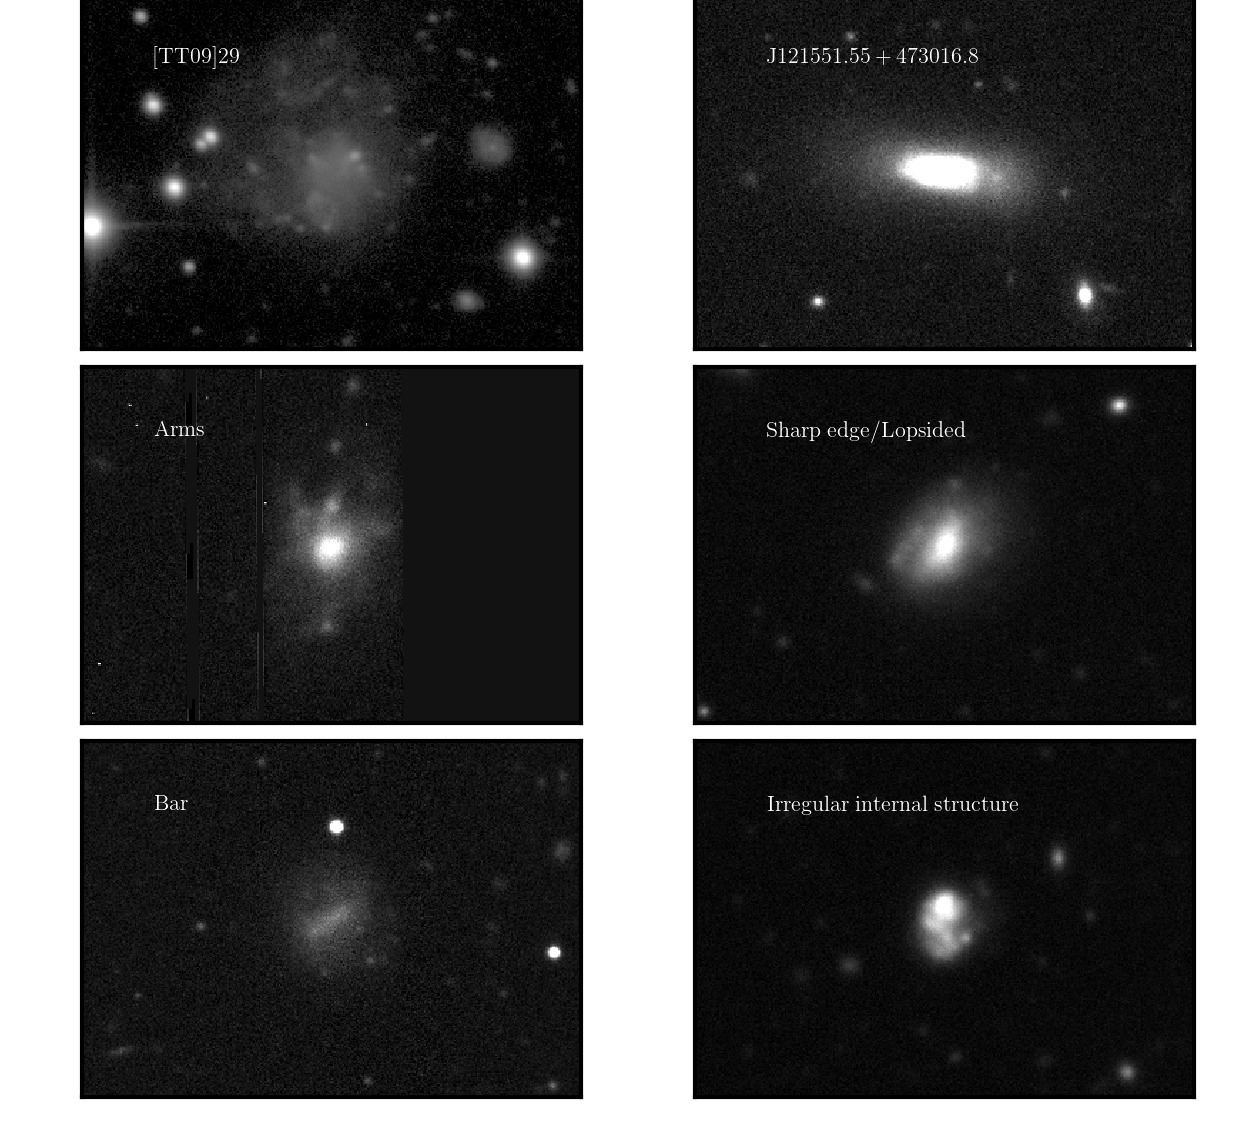 Examples of galaxies that were rejected in the visual inspection step. All images are